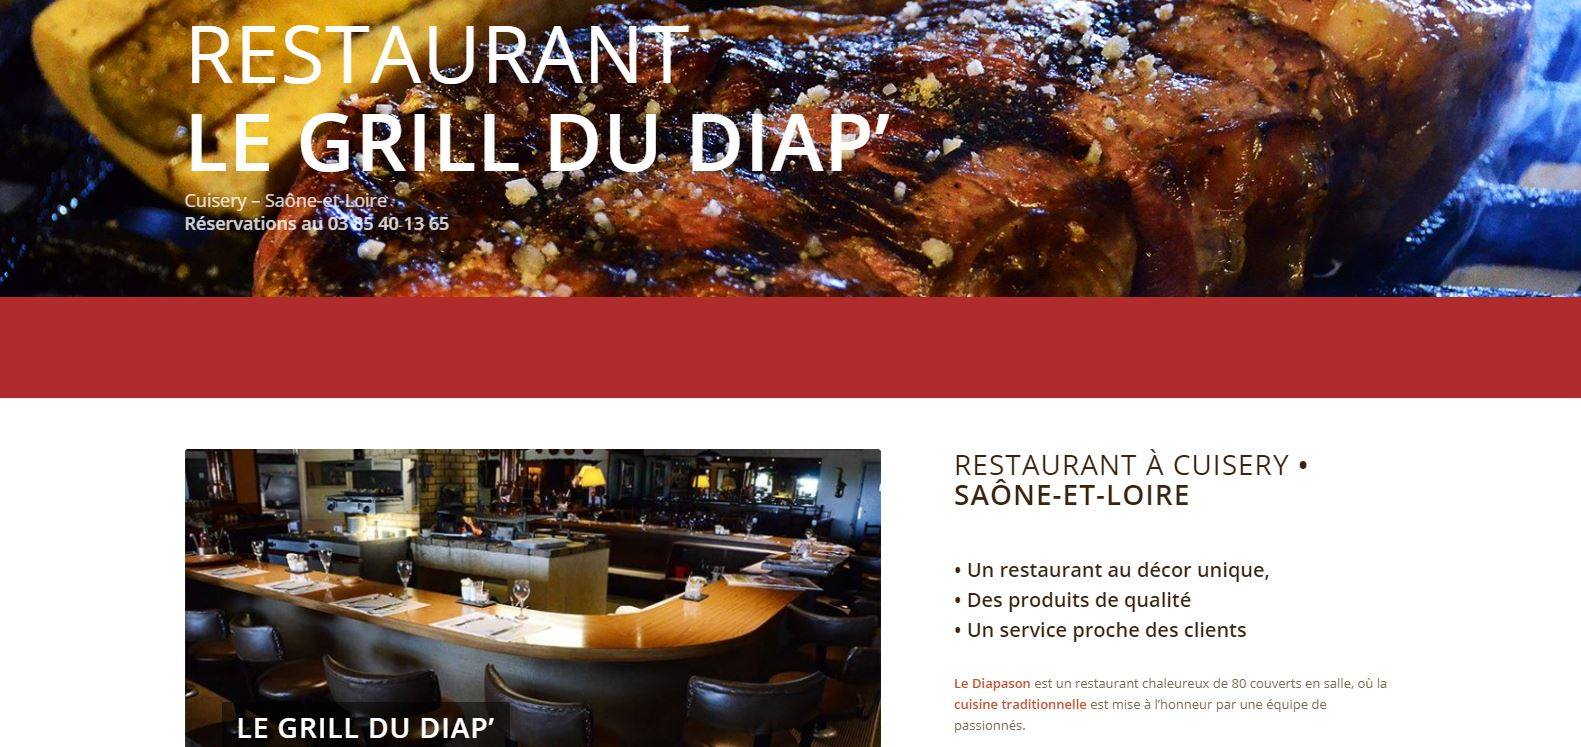 Restaurant Le Grill du Diap' in Cuisery